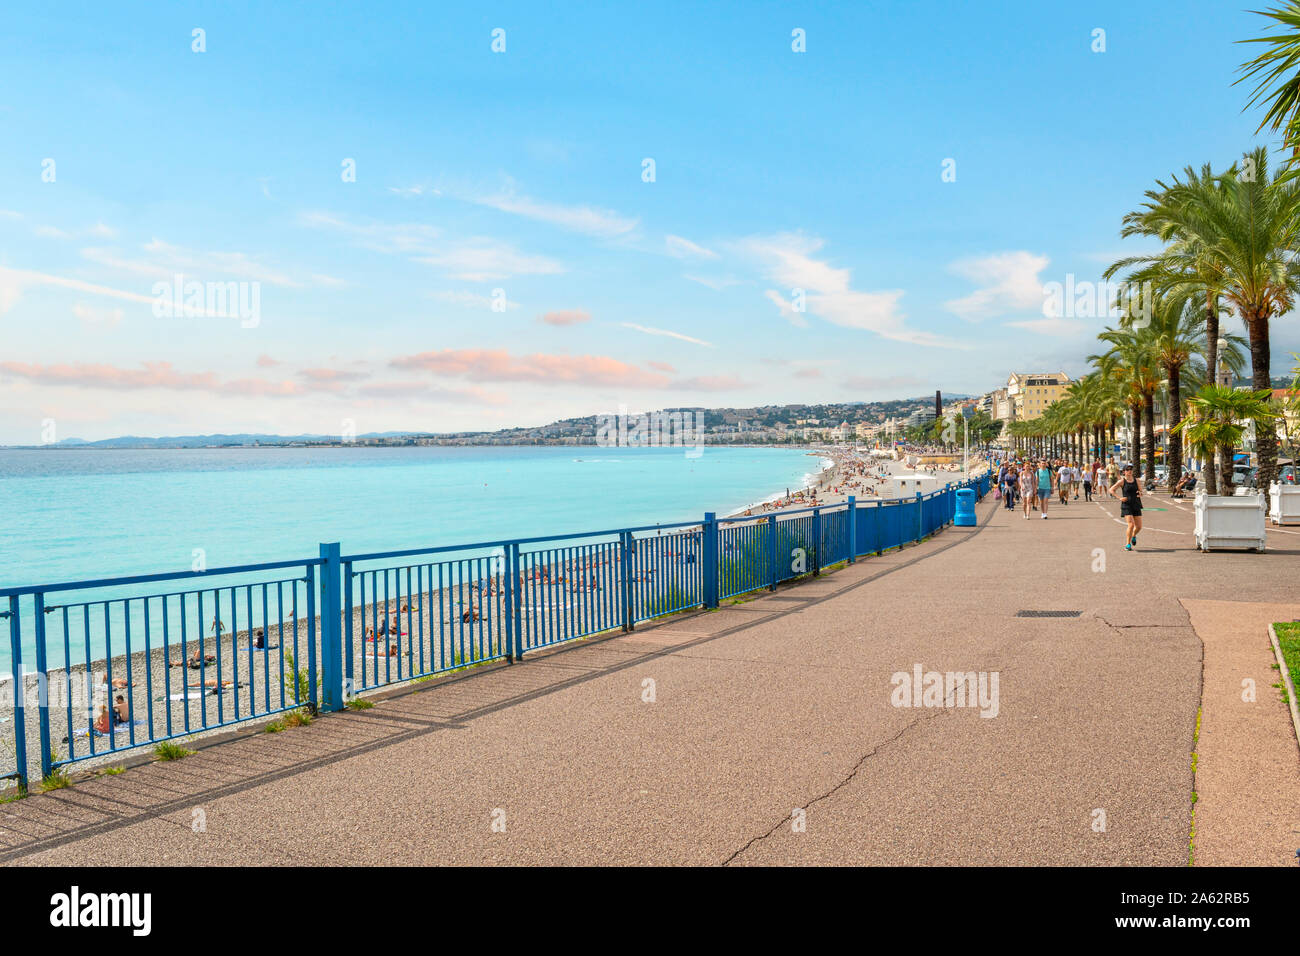 Joggers and walkers pass the Mediterranean sea and beach along the Promenade des Anglais on the French Riviera in Nice France Stock Photo